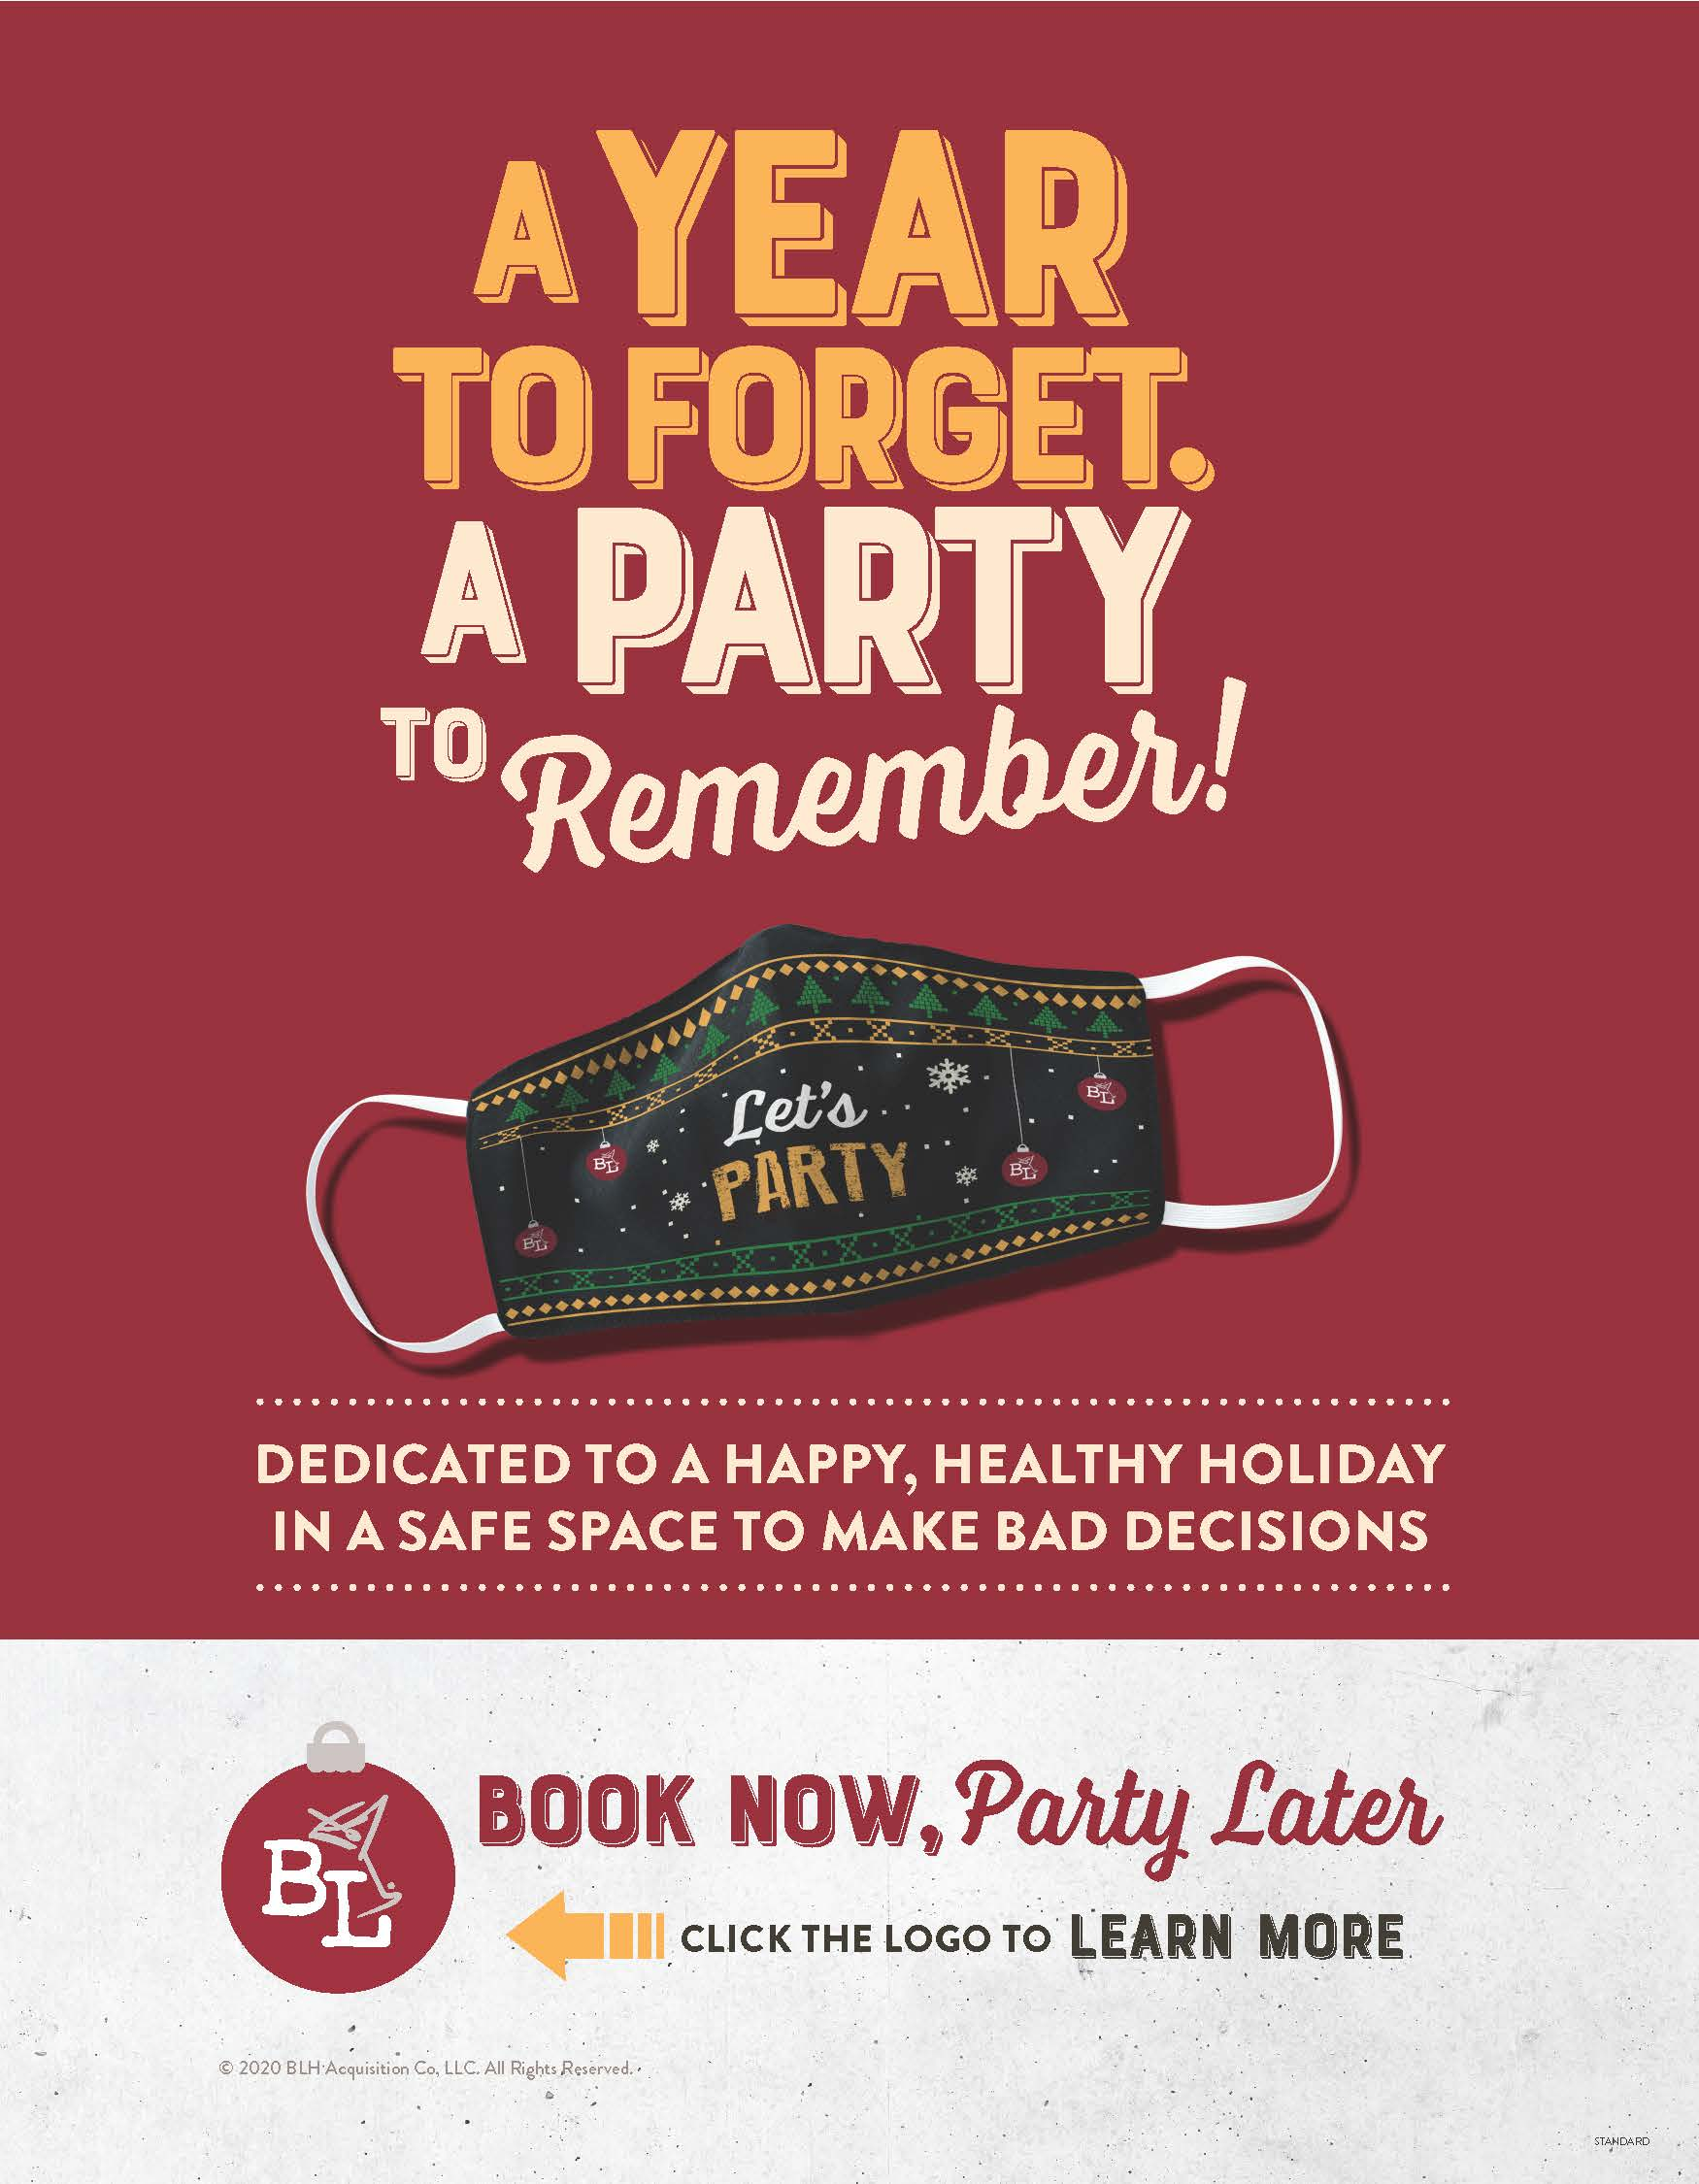 Book Your Holiday Party! from Bar Louie